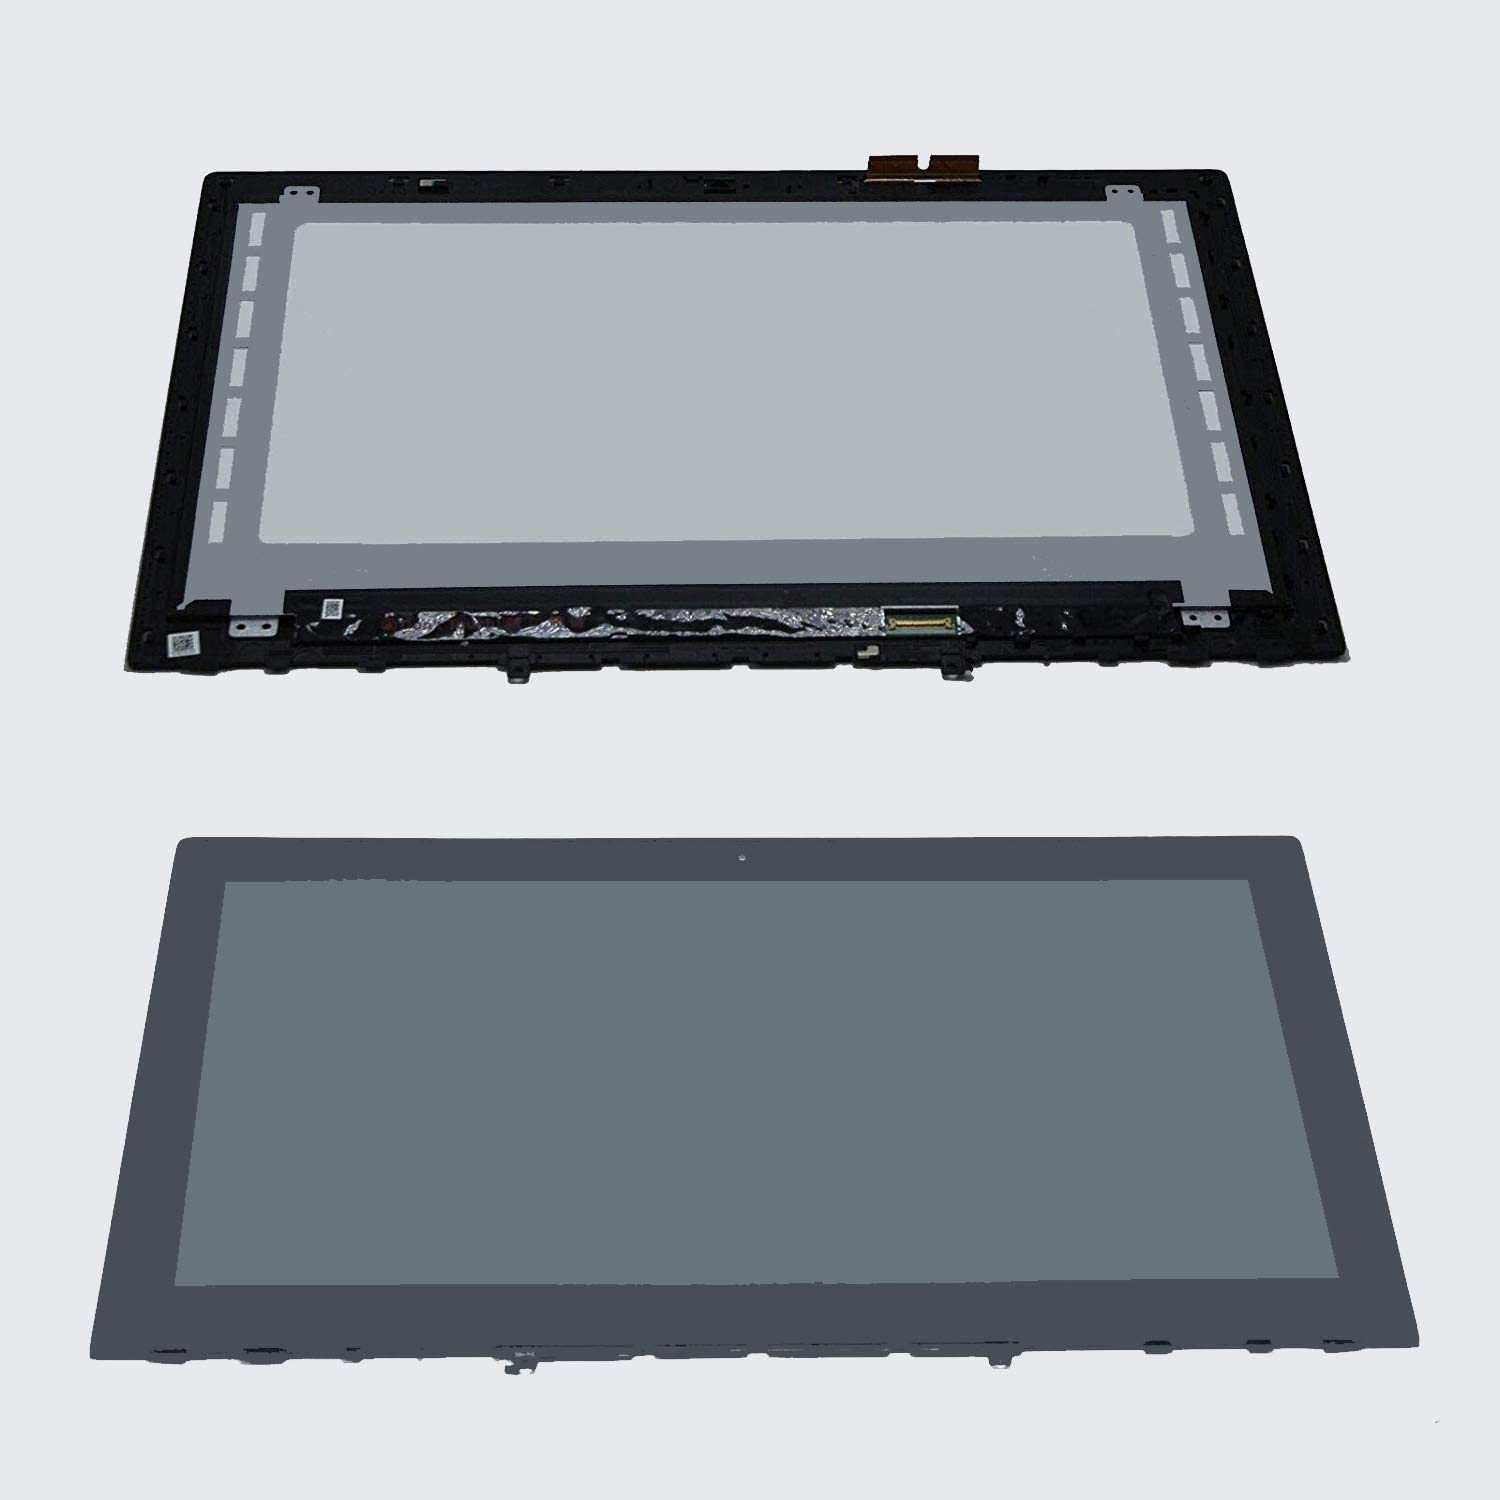 Bblon UHD Display Touch LCD Screen Panel Assembly 3840x2160 for Lenovo Y50-70 20349